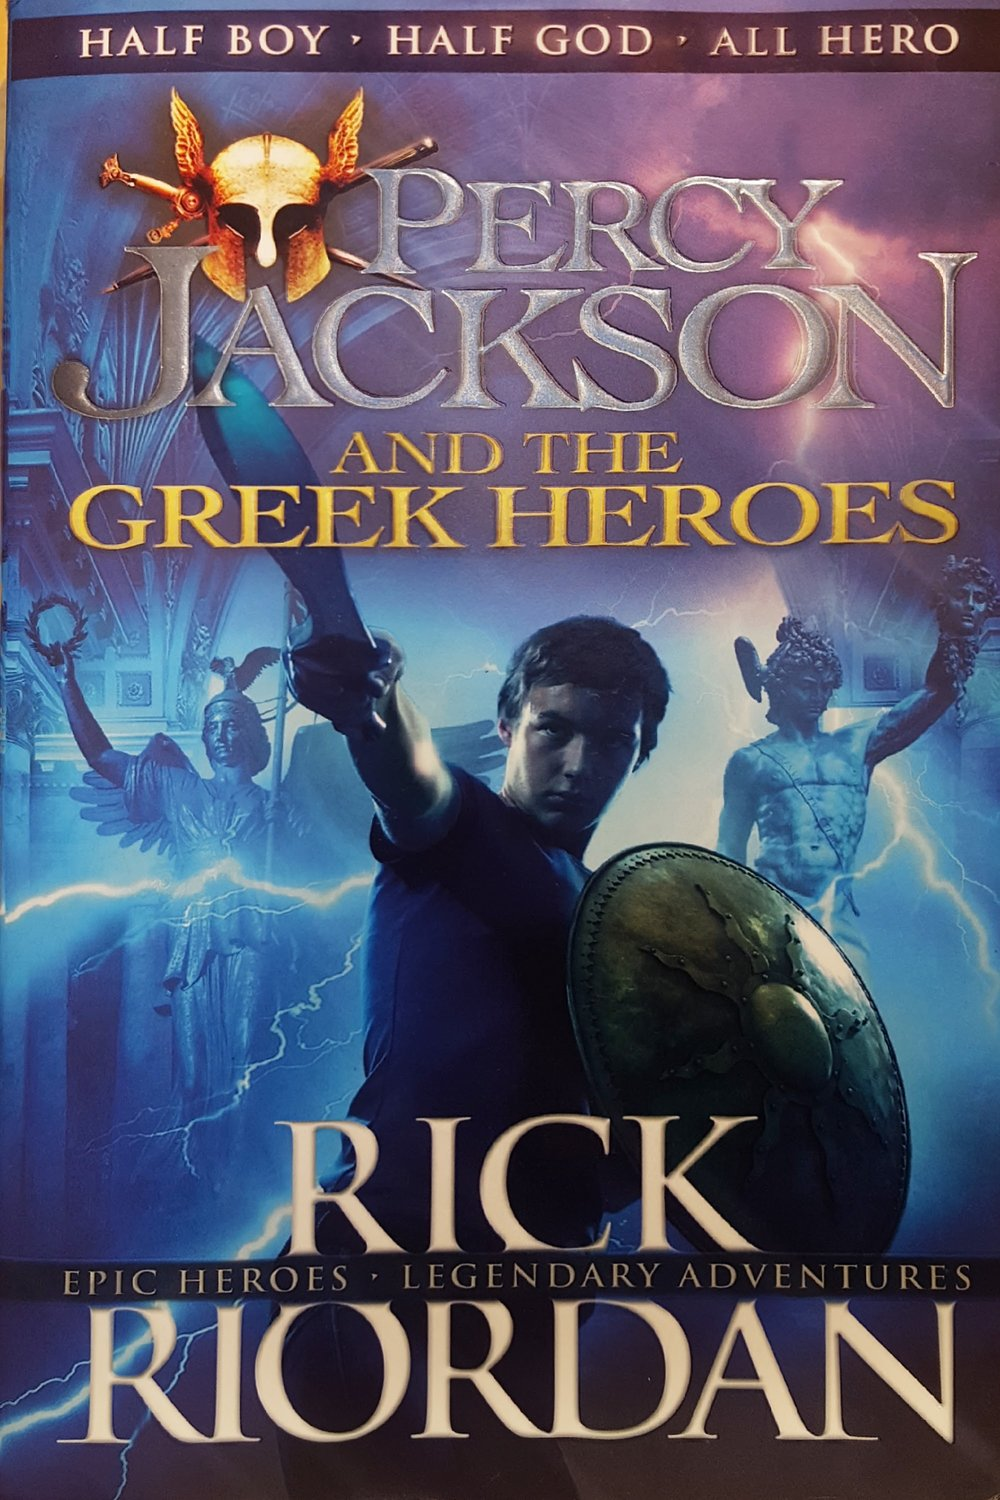 Percy Jackson & the Greek Heroes - Rick Riordan